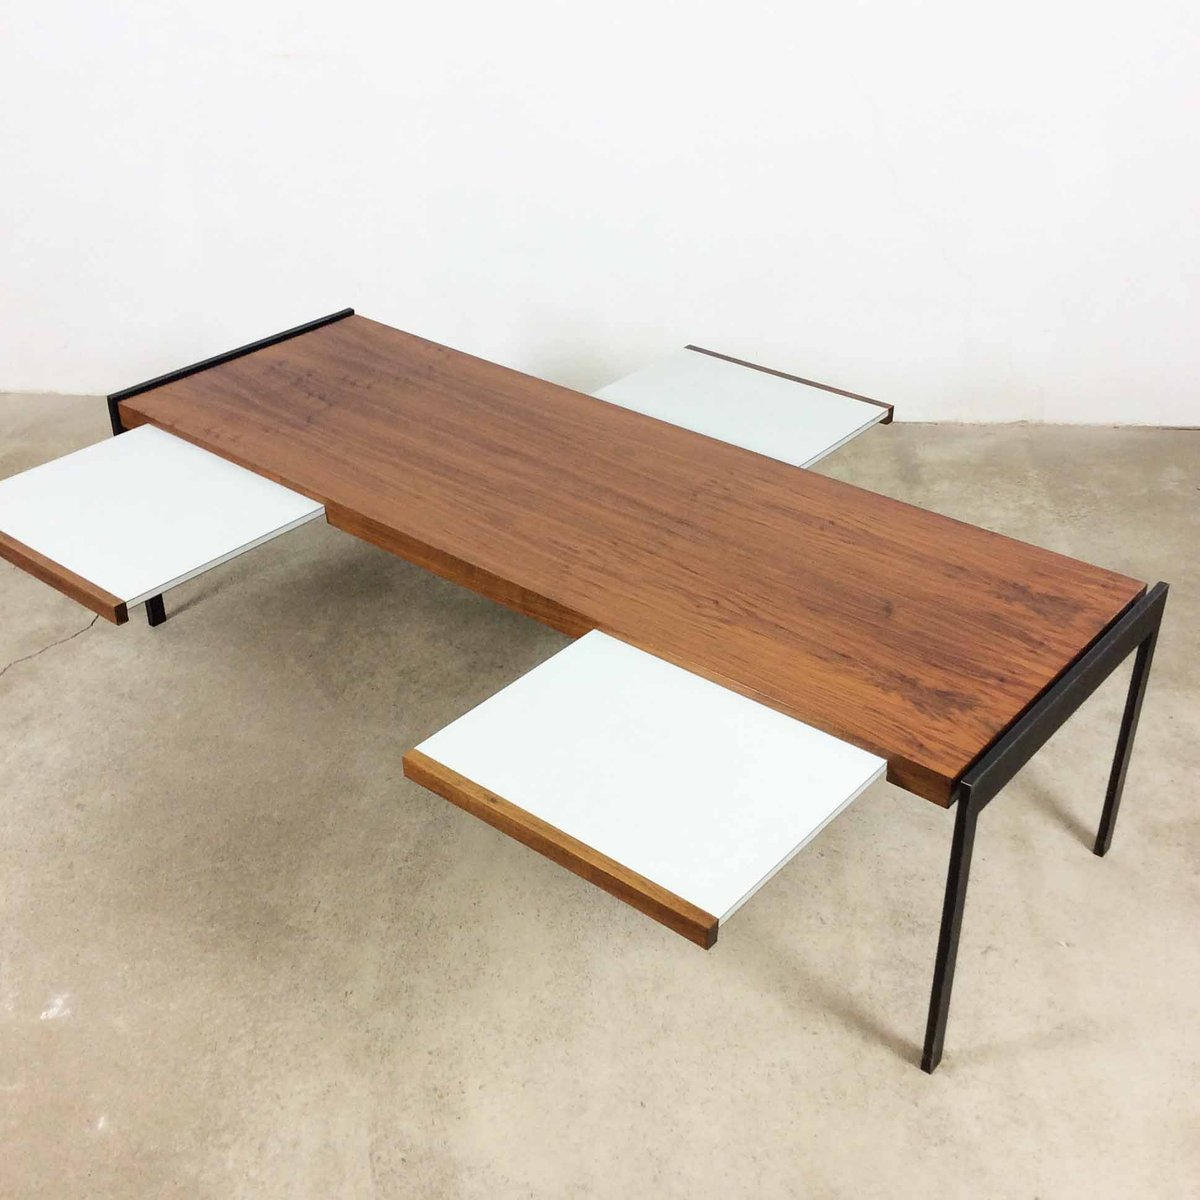 Walnut Coffee Table by Wilhelm Renz, 1960s - Walnut Coffee Table By Wilhelm Renz, 1960s For Sale At Pamono